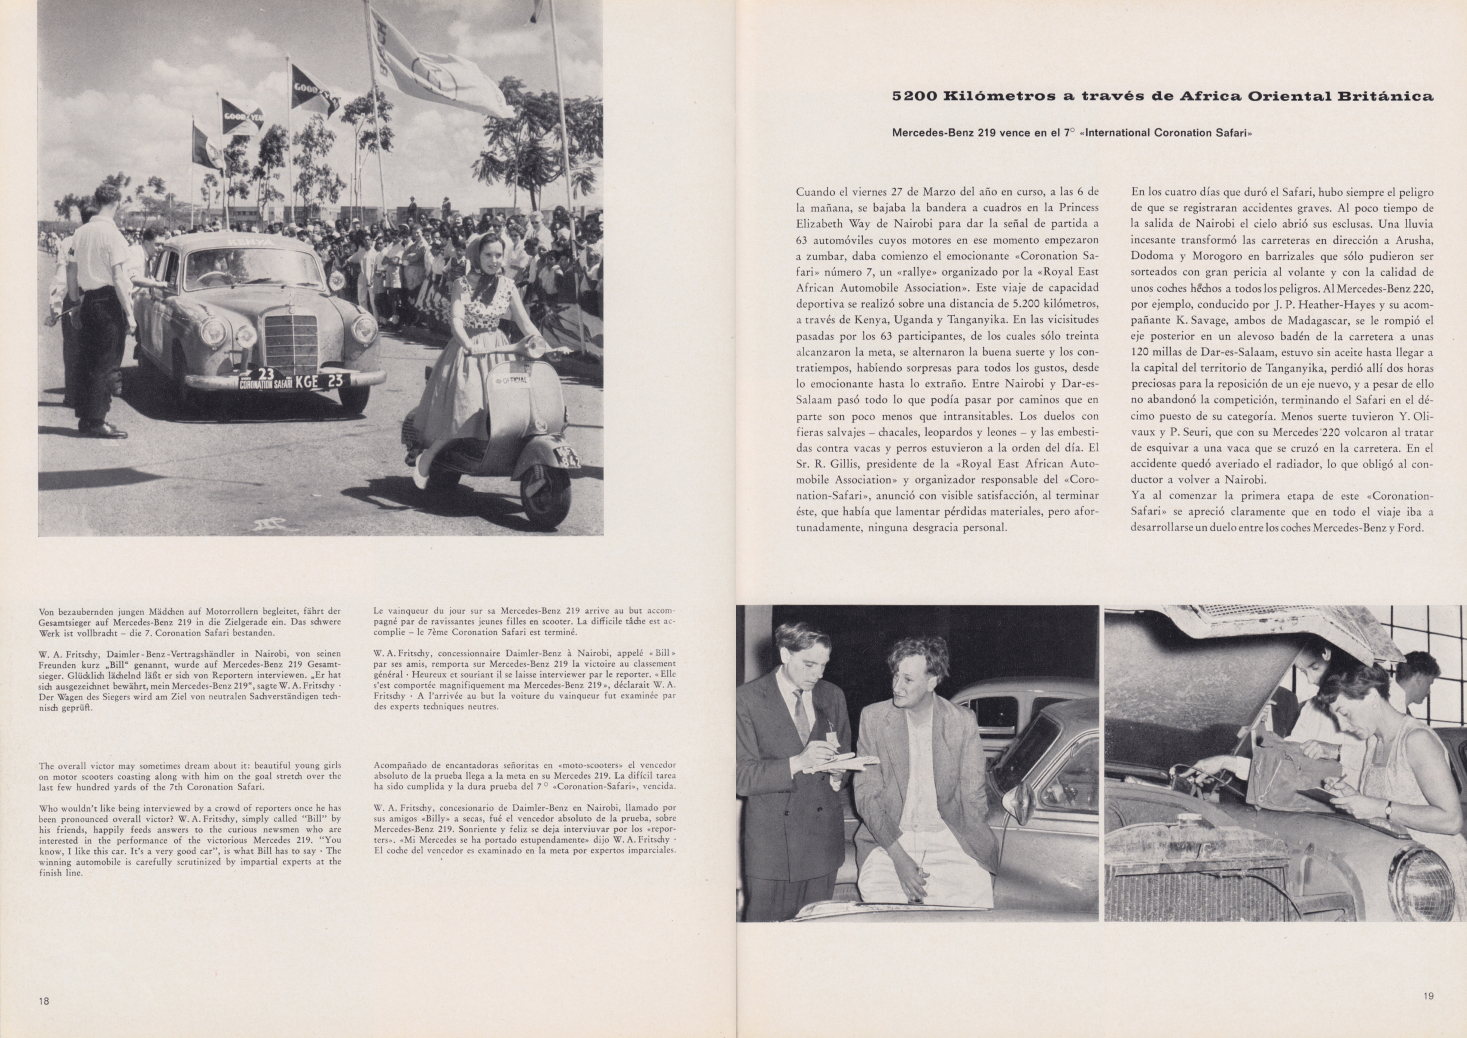 (REVISTA): Periódico In aller welt n.º 33 - Mercedes-Benz no mundo - 1959 - multilingue 010